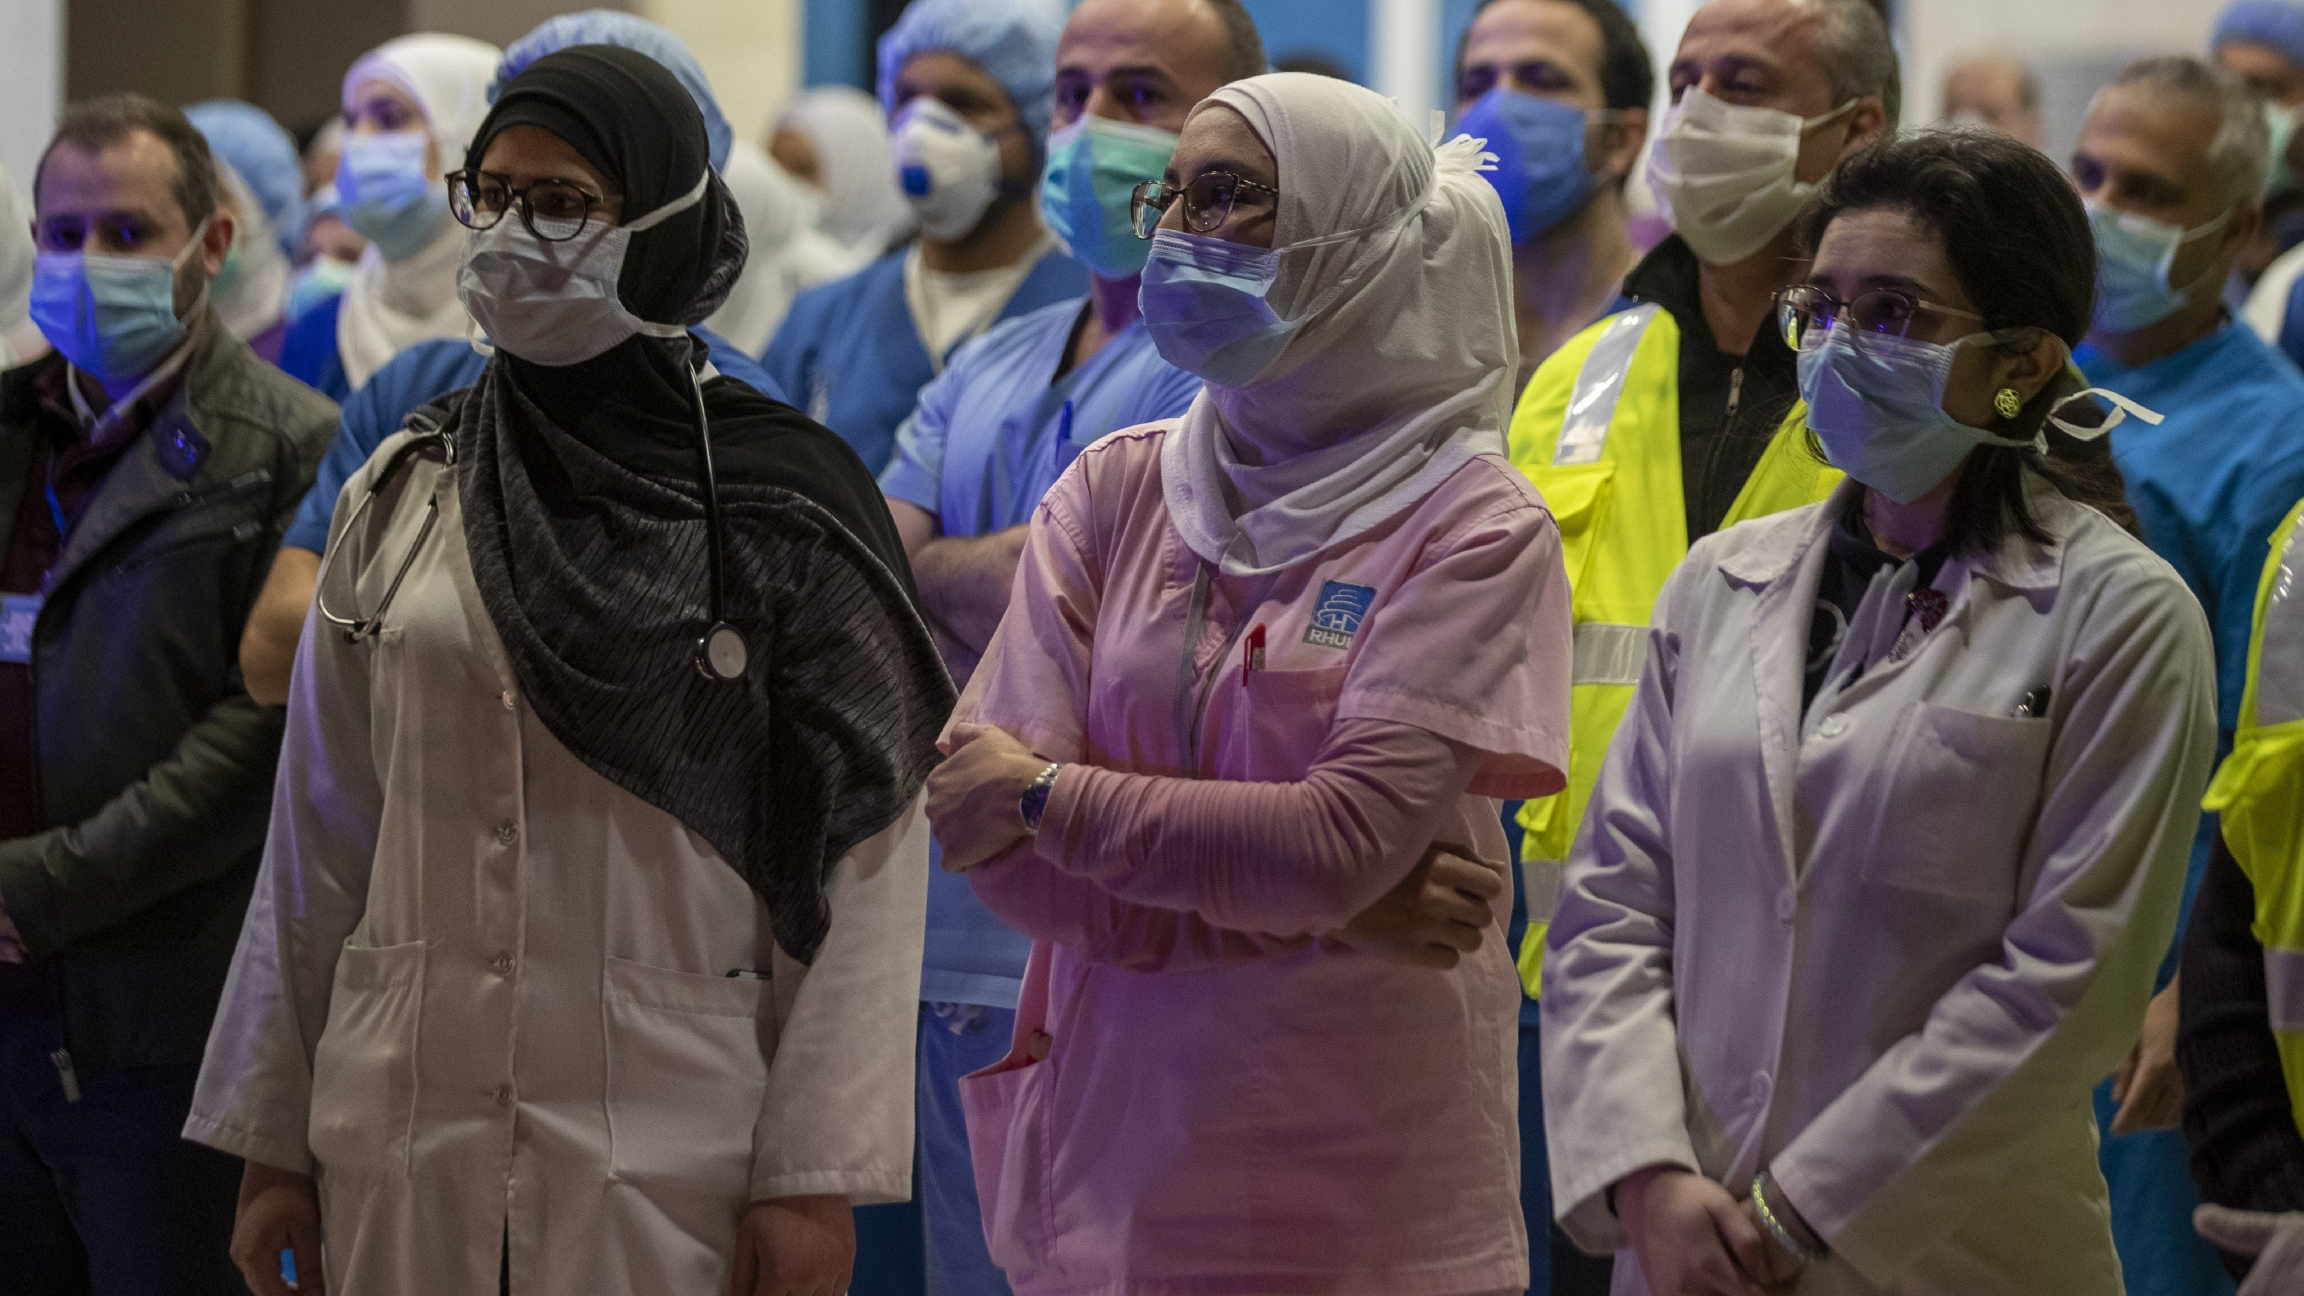 Three women health care workers in uniform, wearing headscarves and masks, stand and listen among a crowd of medical workers.